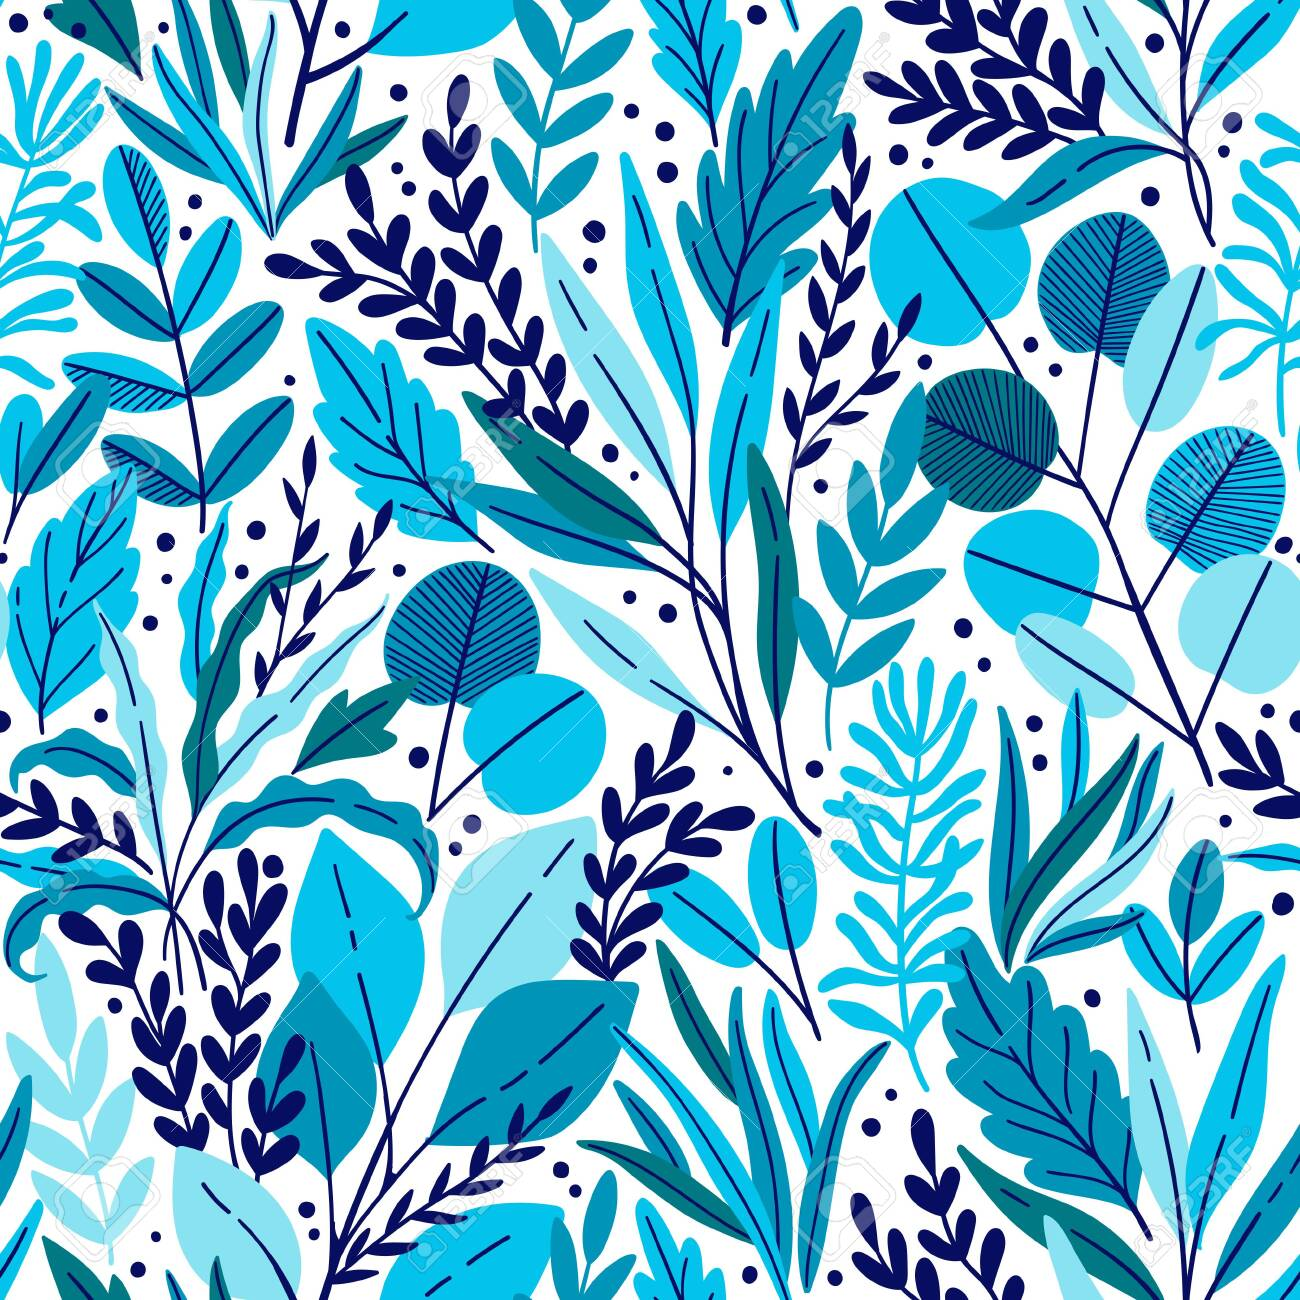 Exotic vector seamless pattern with eucalyptus leaves and plant branches. Tropical floral background - 143512531